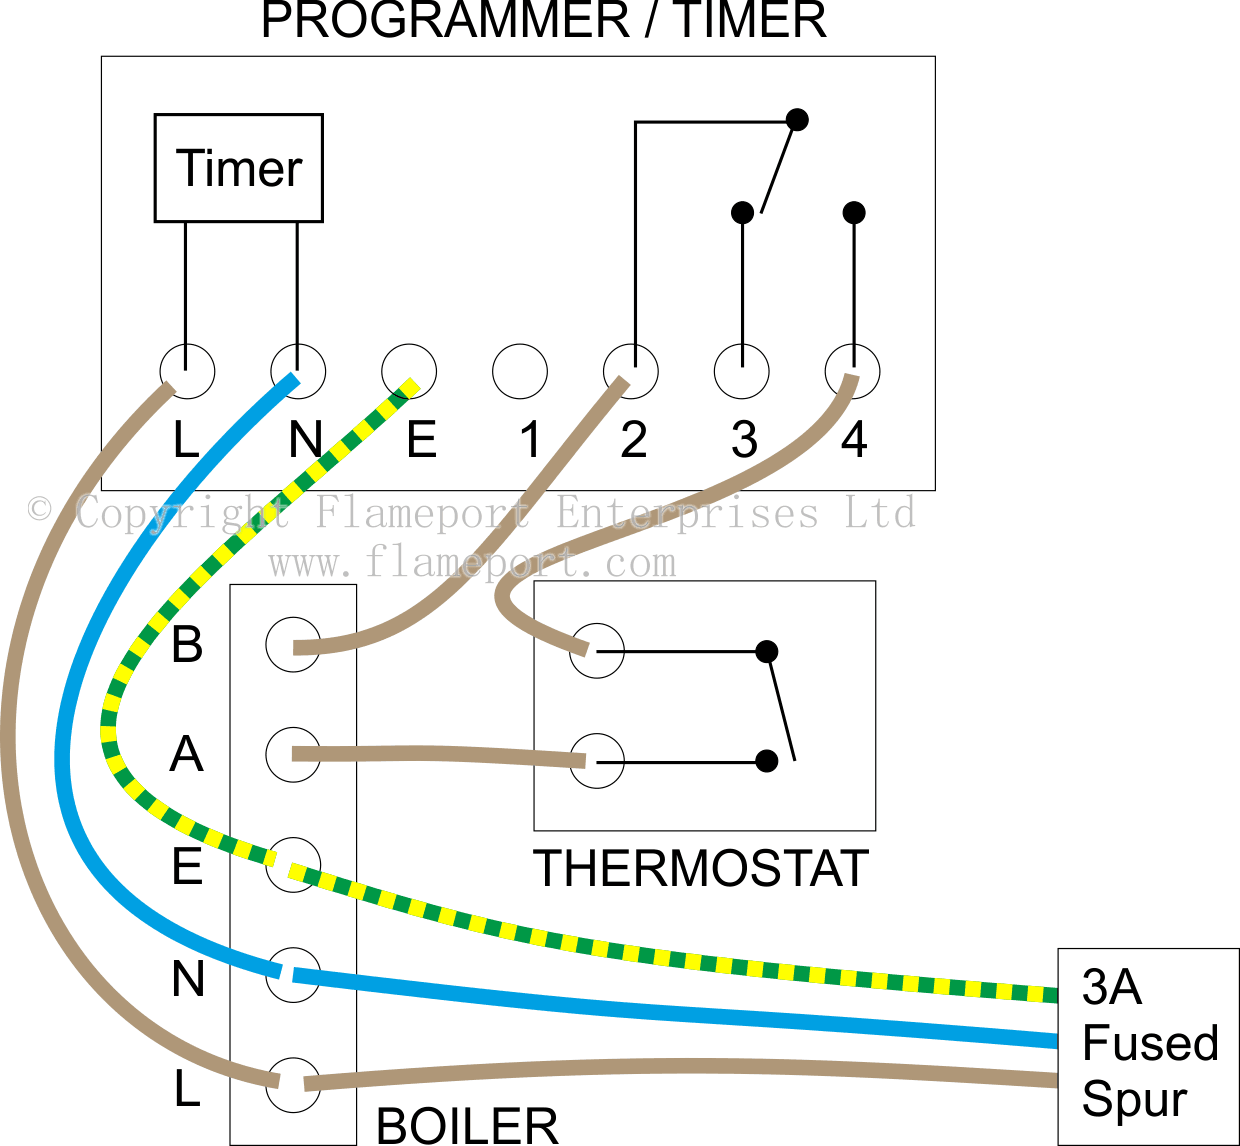 combination_boiler_thermostat_programmer_voltfree?resize\=665%2C615\&ssl\=1 central boiler thermostat wiring diagram wiring diagrams central boiler thermostat wiring diagram at n-0.co